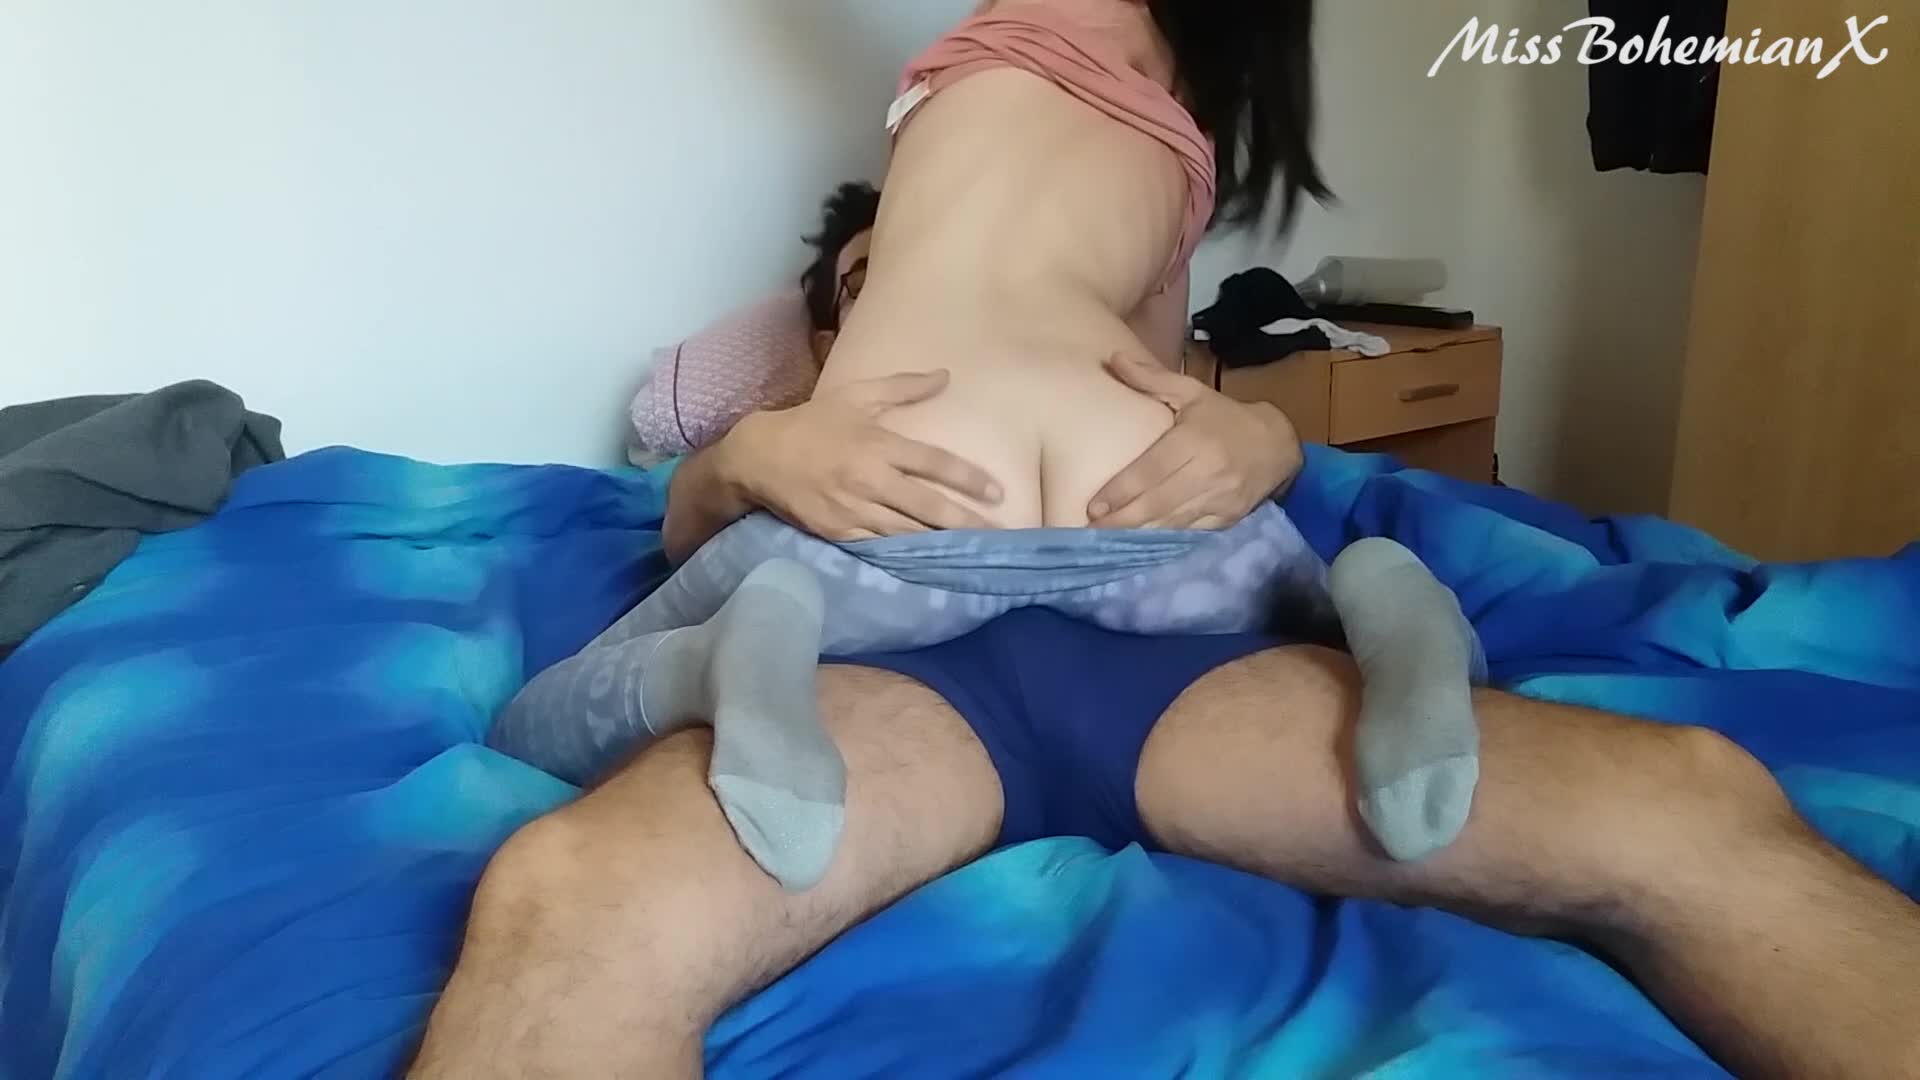 Nude photos grinding and humping pussy vids